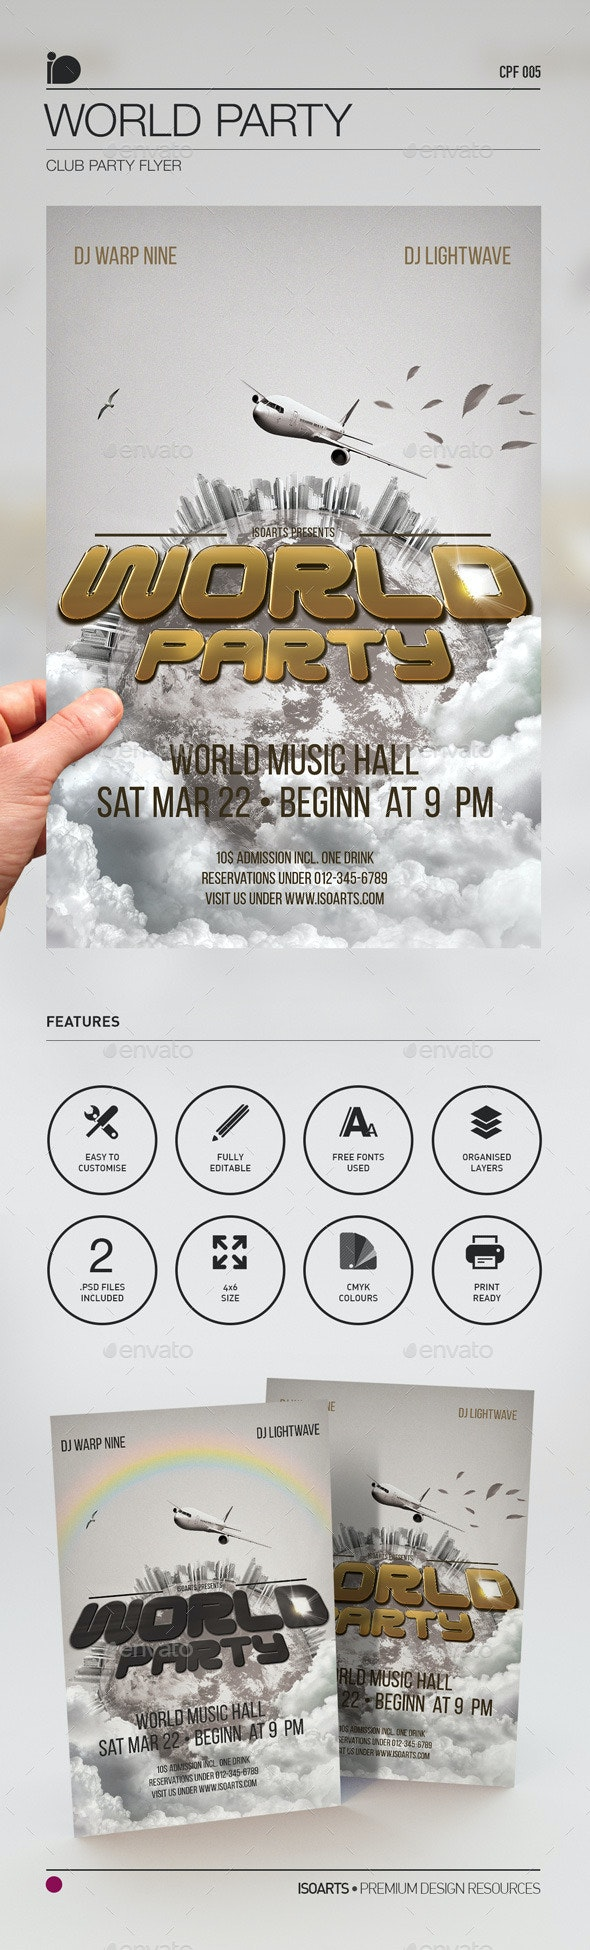 Club Party Flyer • World Party - Clubs & Parties Events